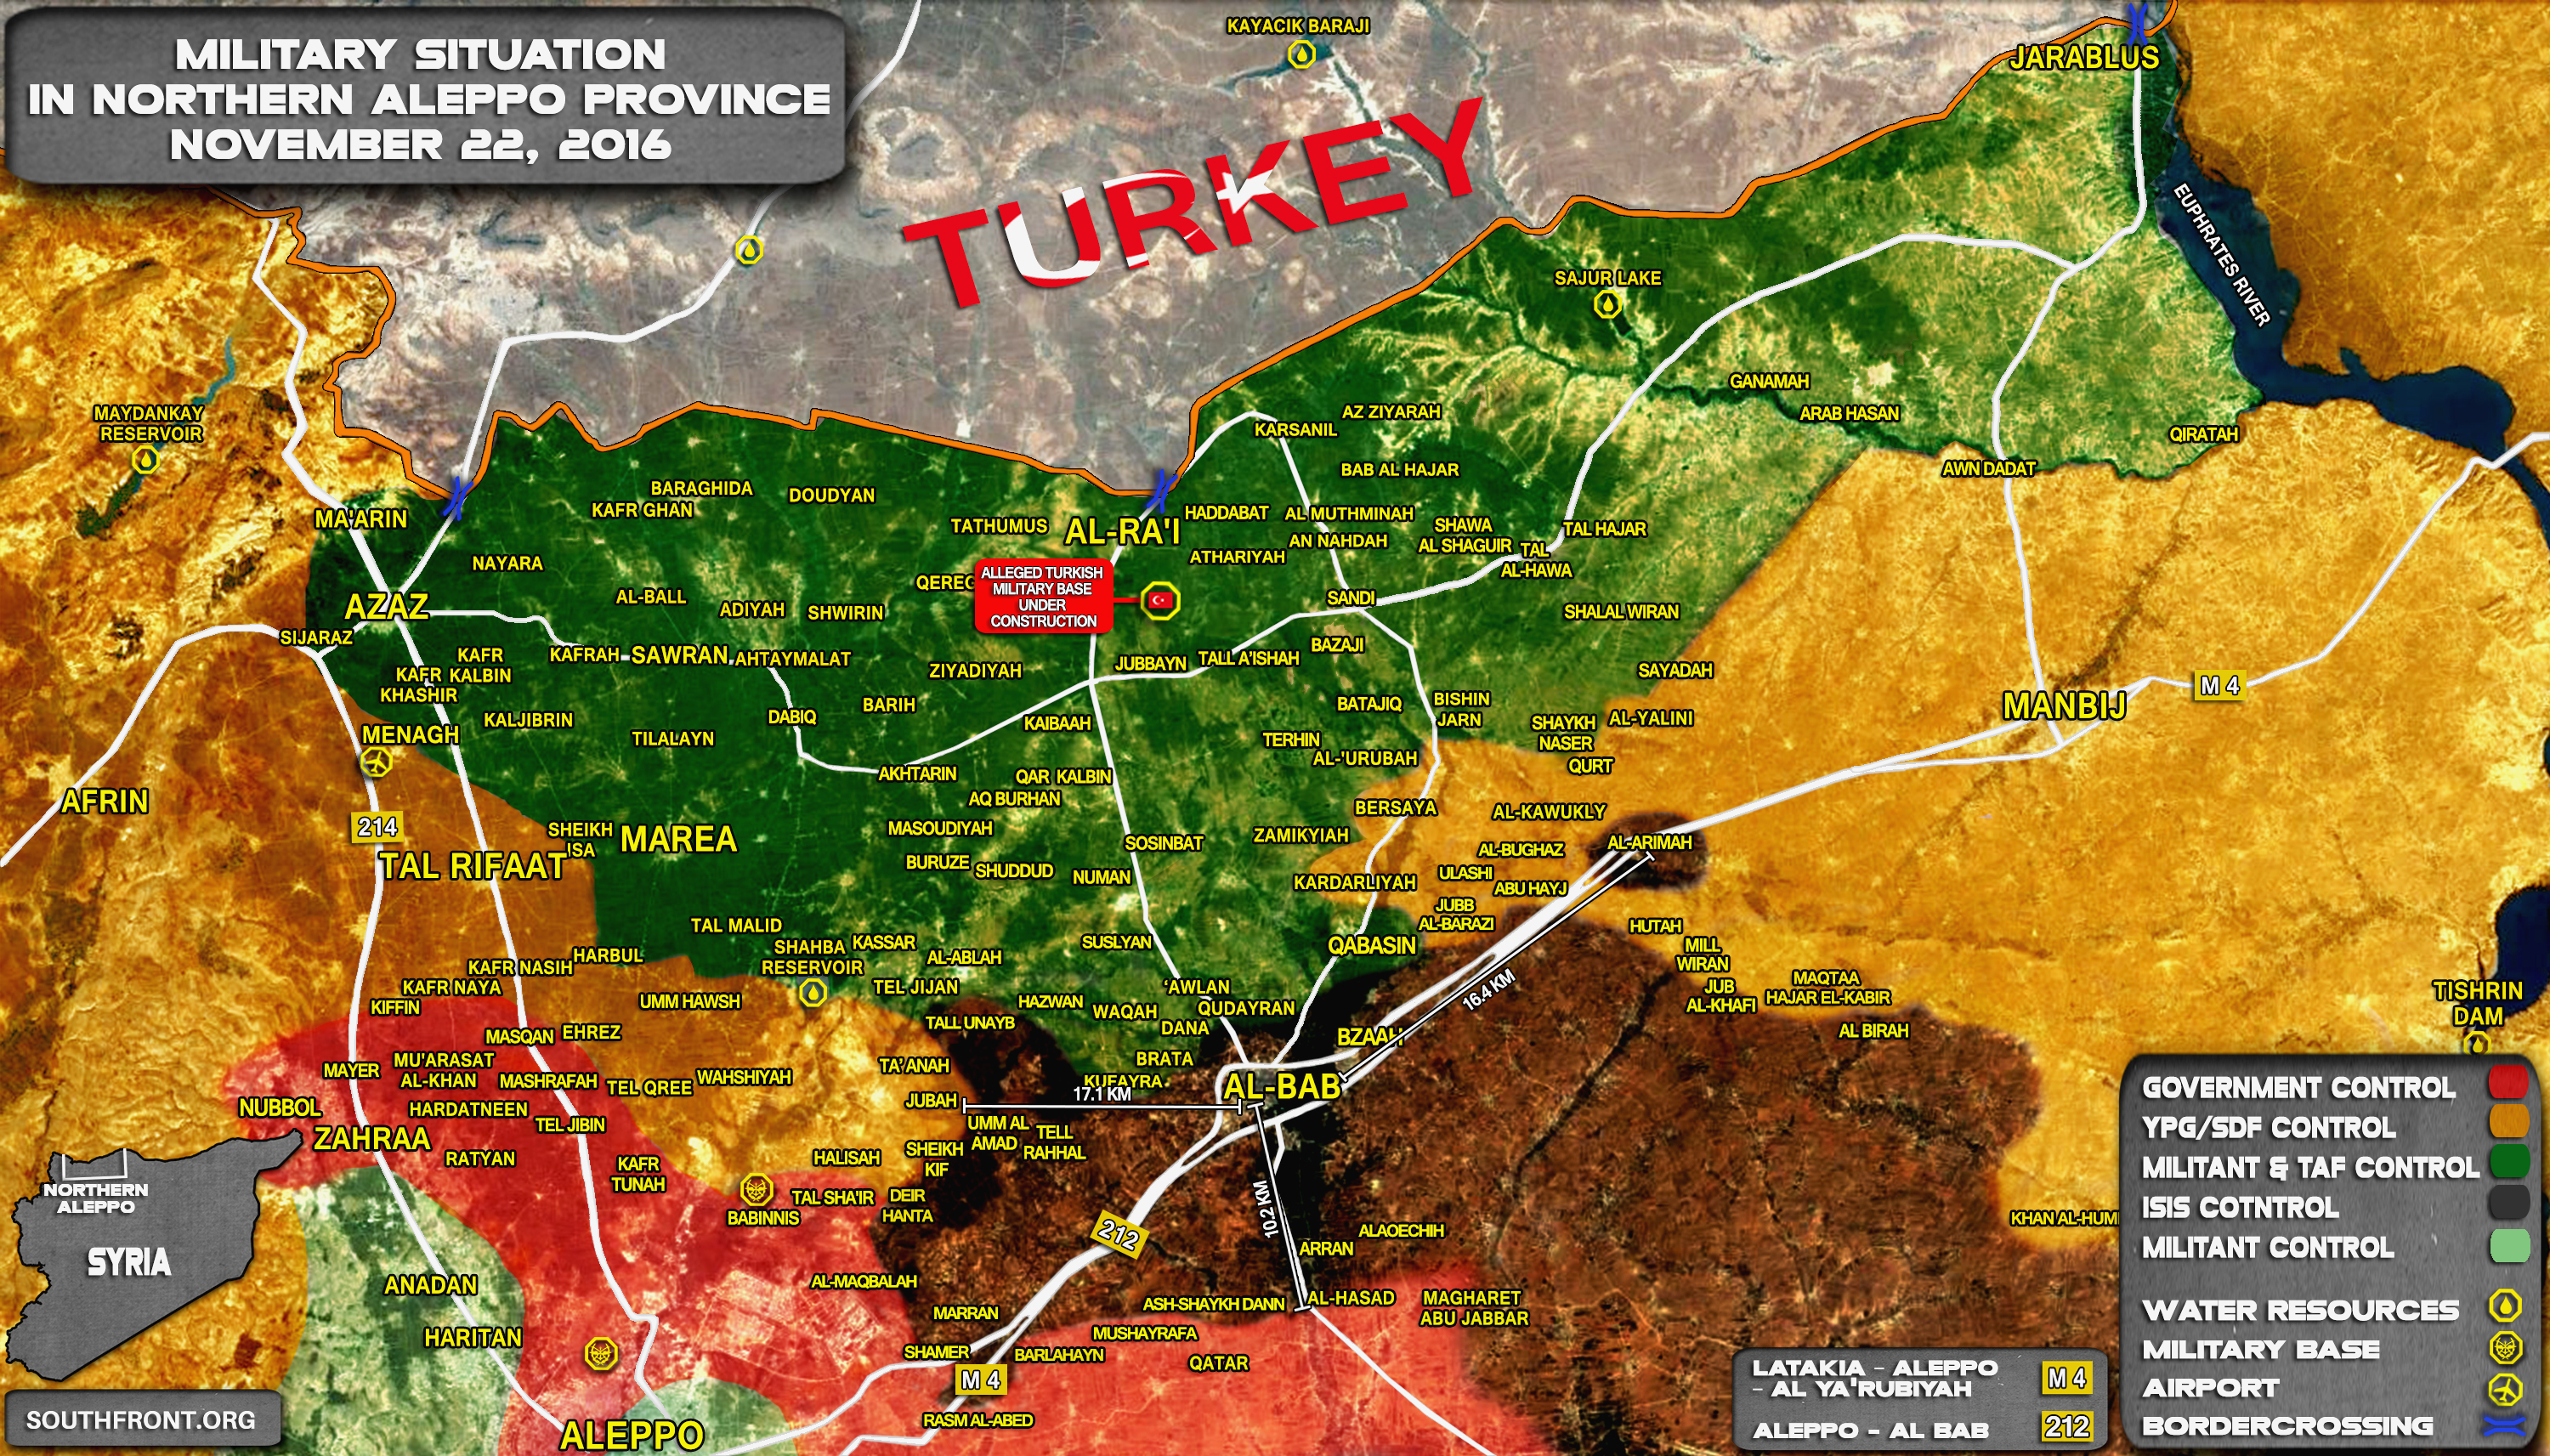 Pro-Turkey Militants and Kurdish YPG Forces Face Stalemate in Northern Syria